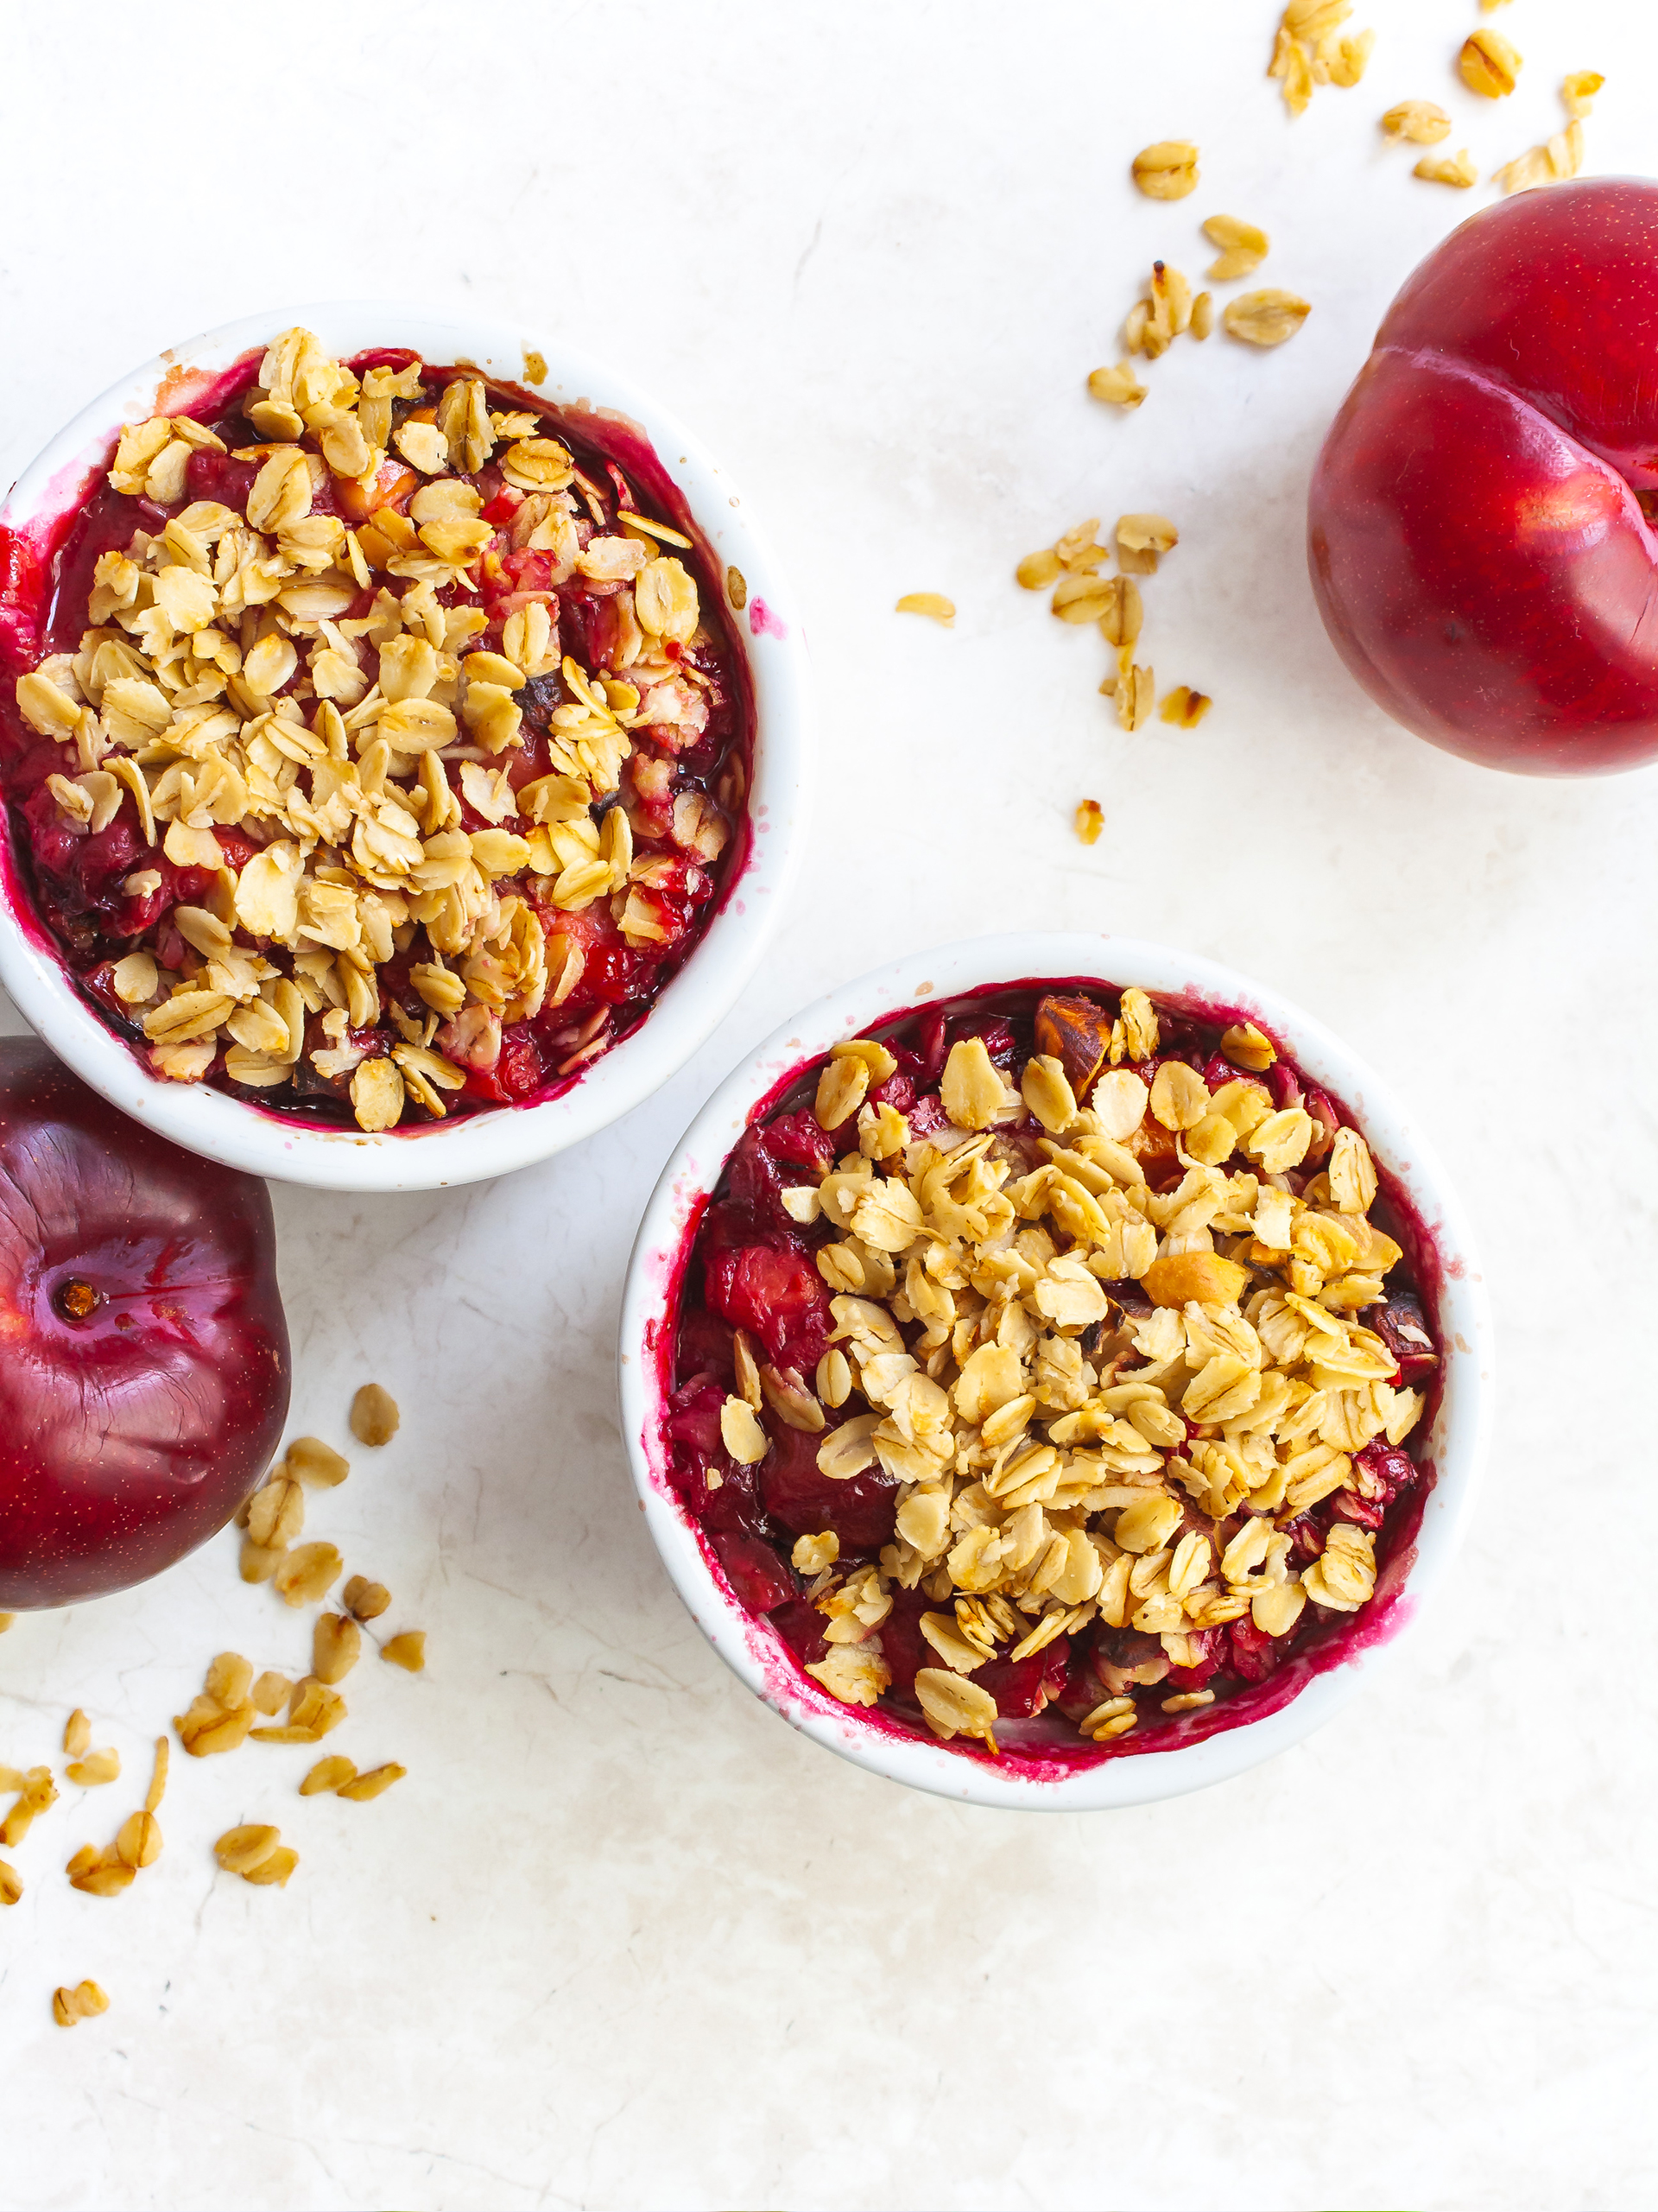 Healthy Vegan Plum Crumble with Oats and Nuts Thumbnail